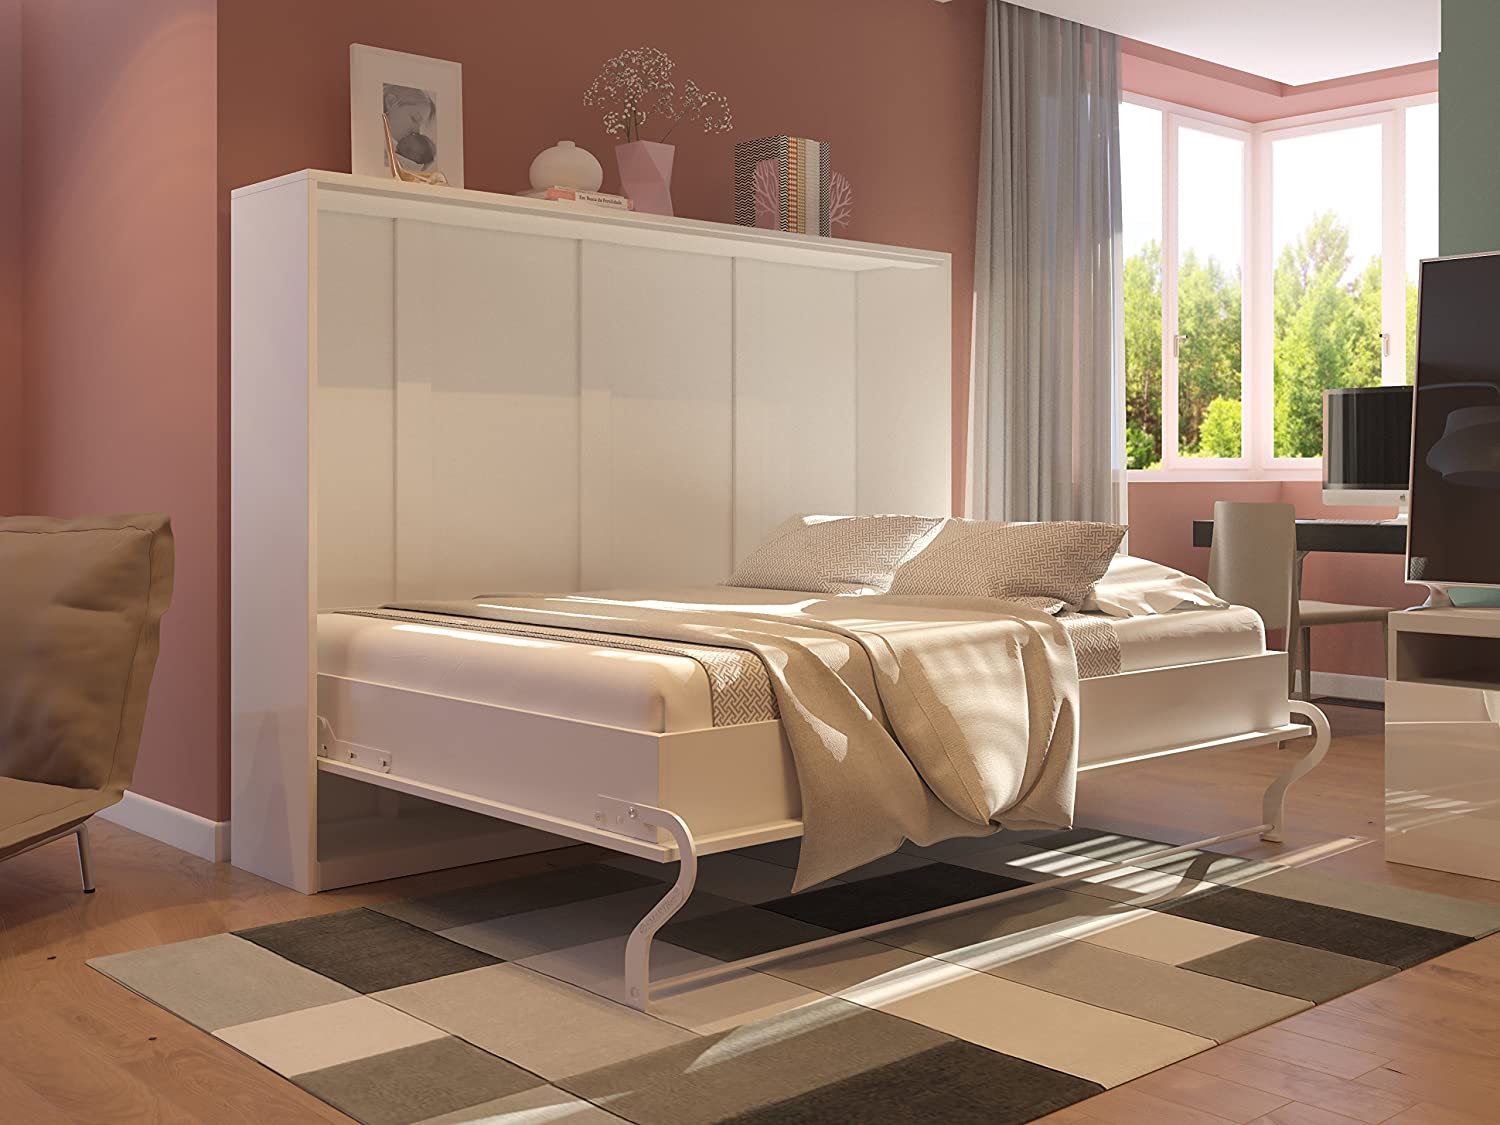 SMARTBett Wall Bed Cabinet with Integrated Folding Bed 140 x 200 cm ...